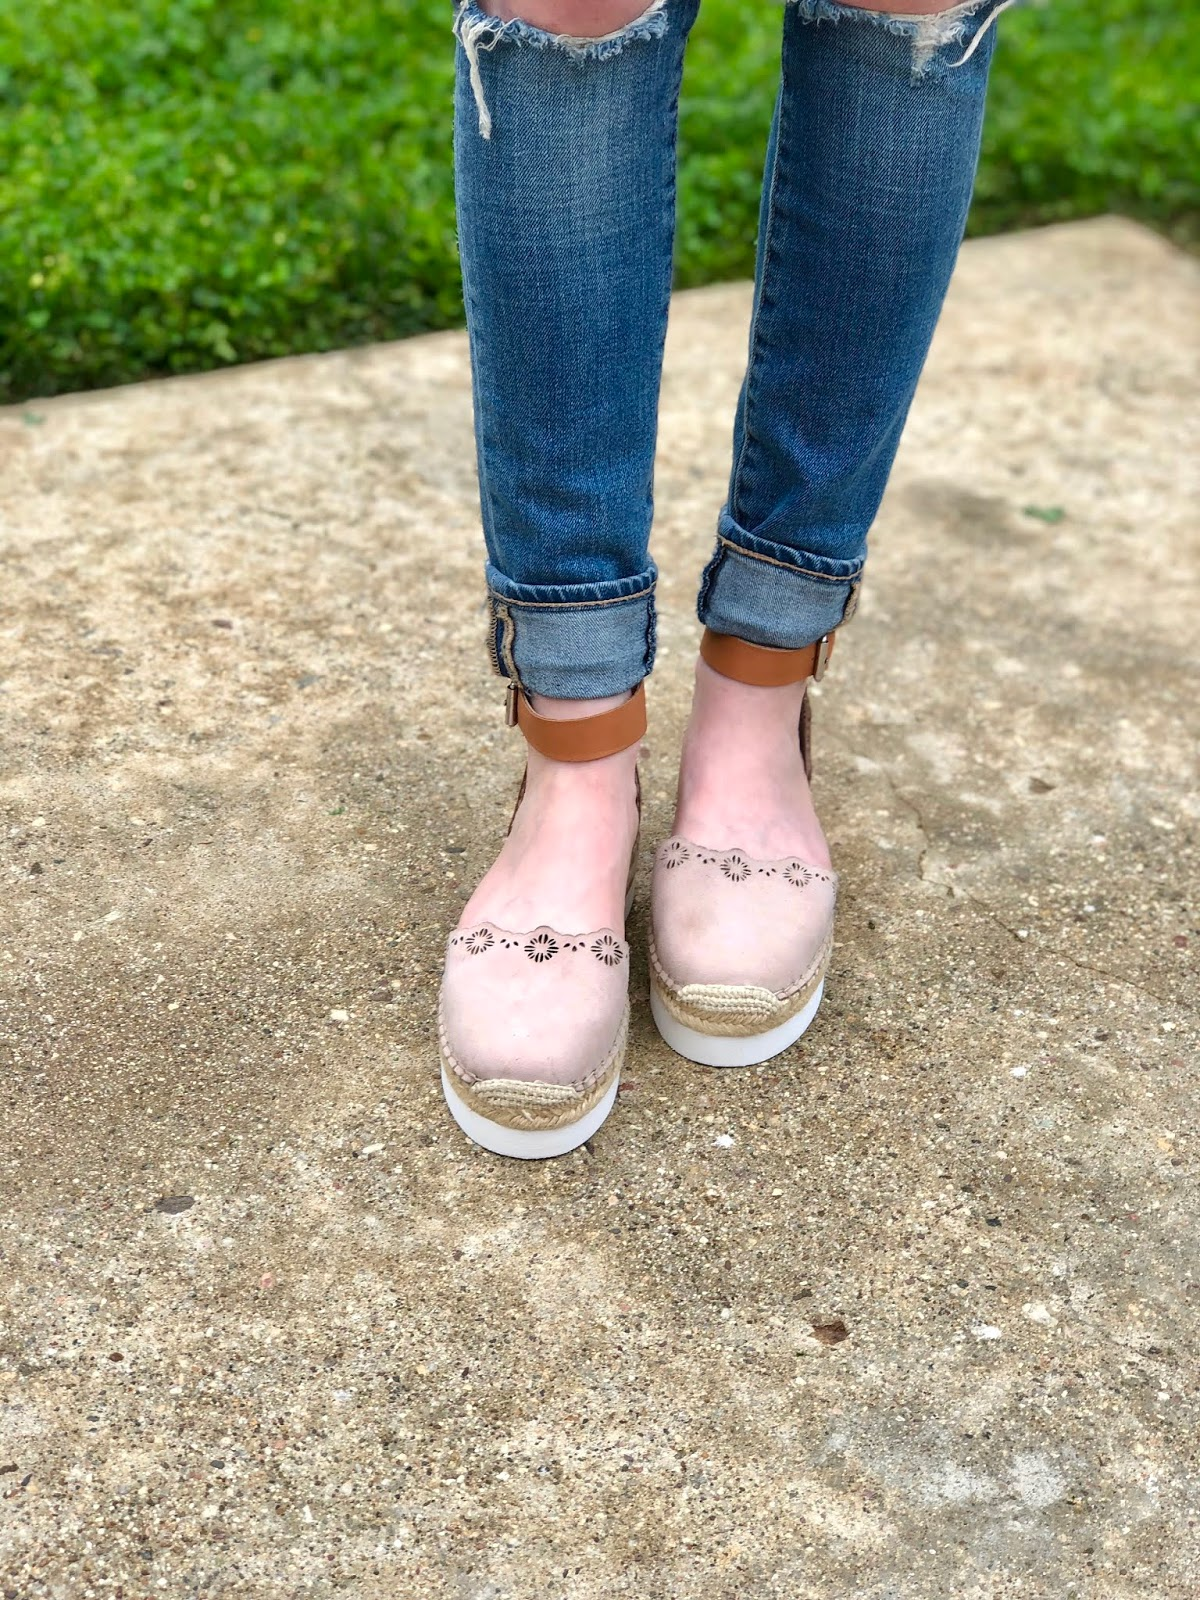 0e0b7f652f2 Chloe Espadrille Dupes & My 1 Year Blogging Anniversary: Recap of ...